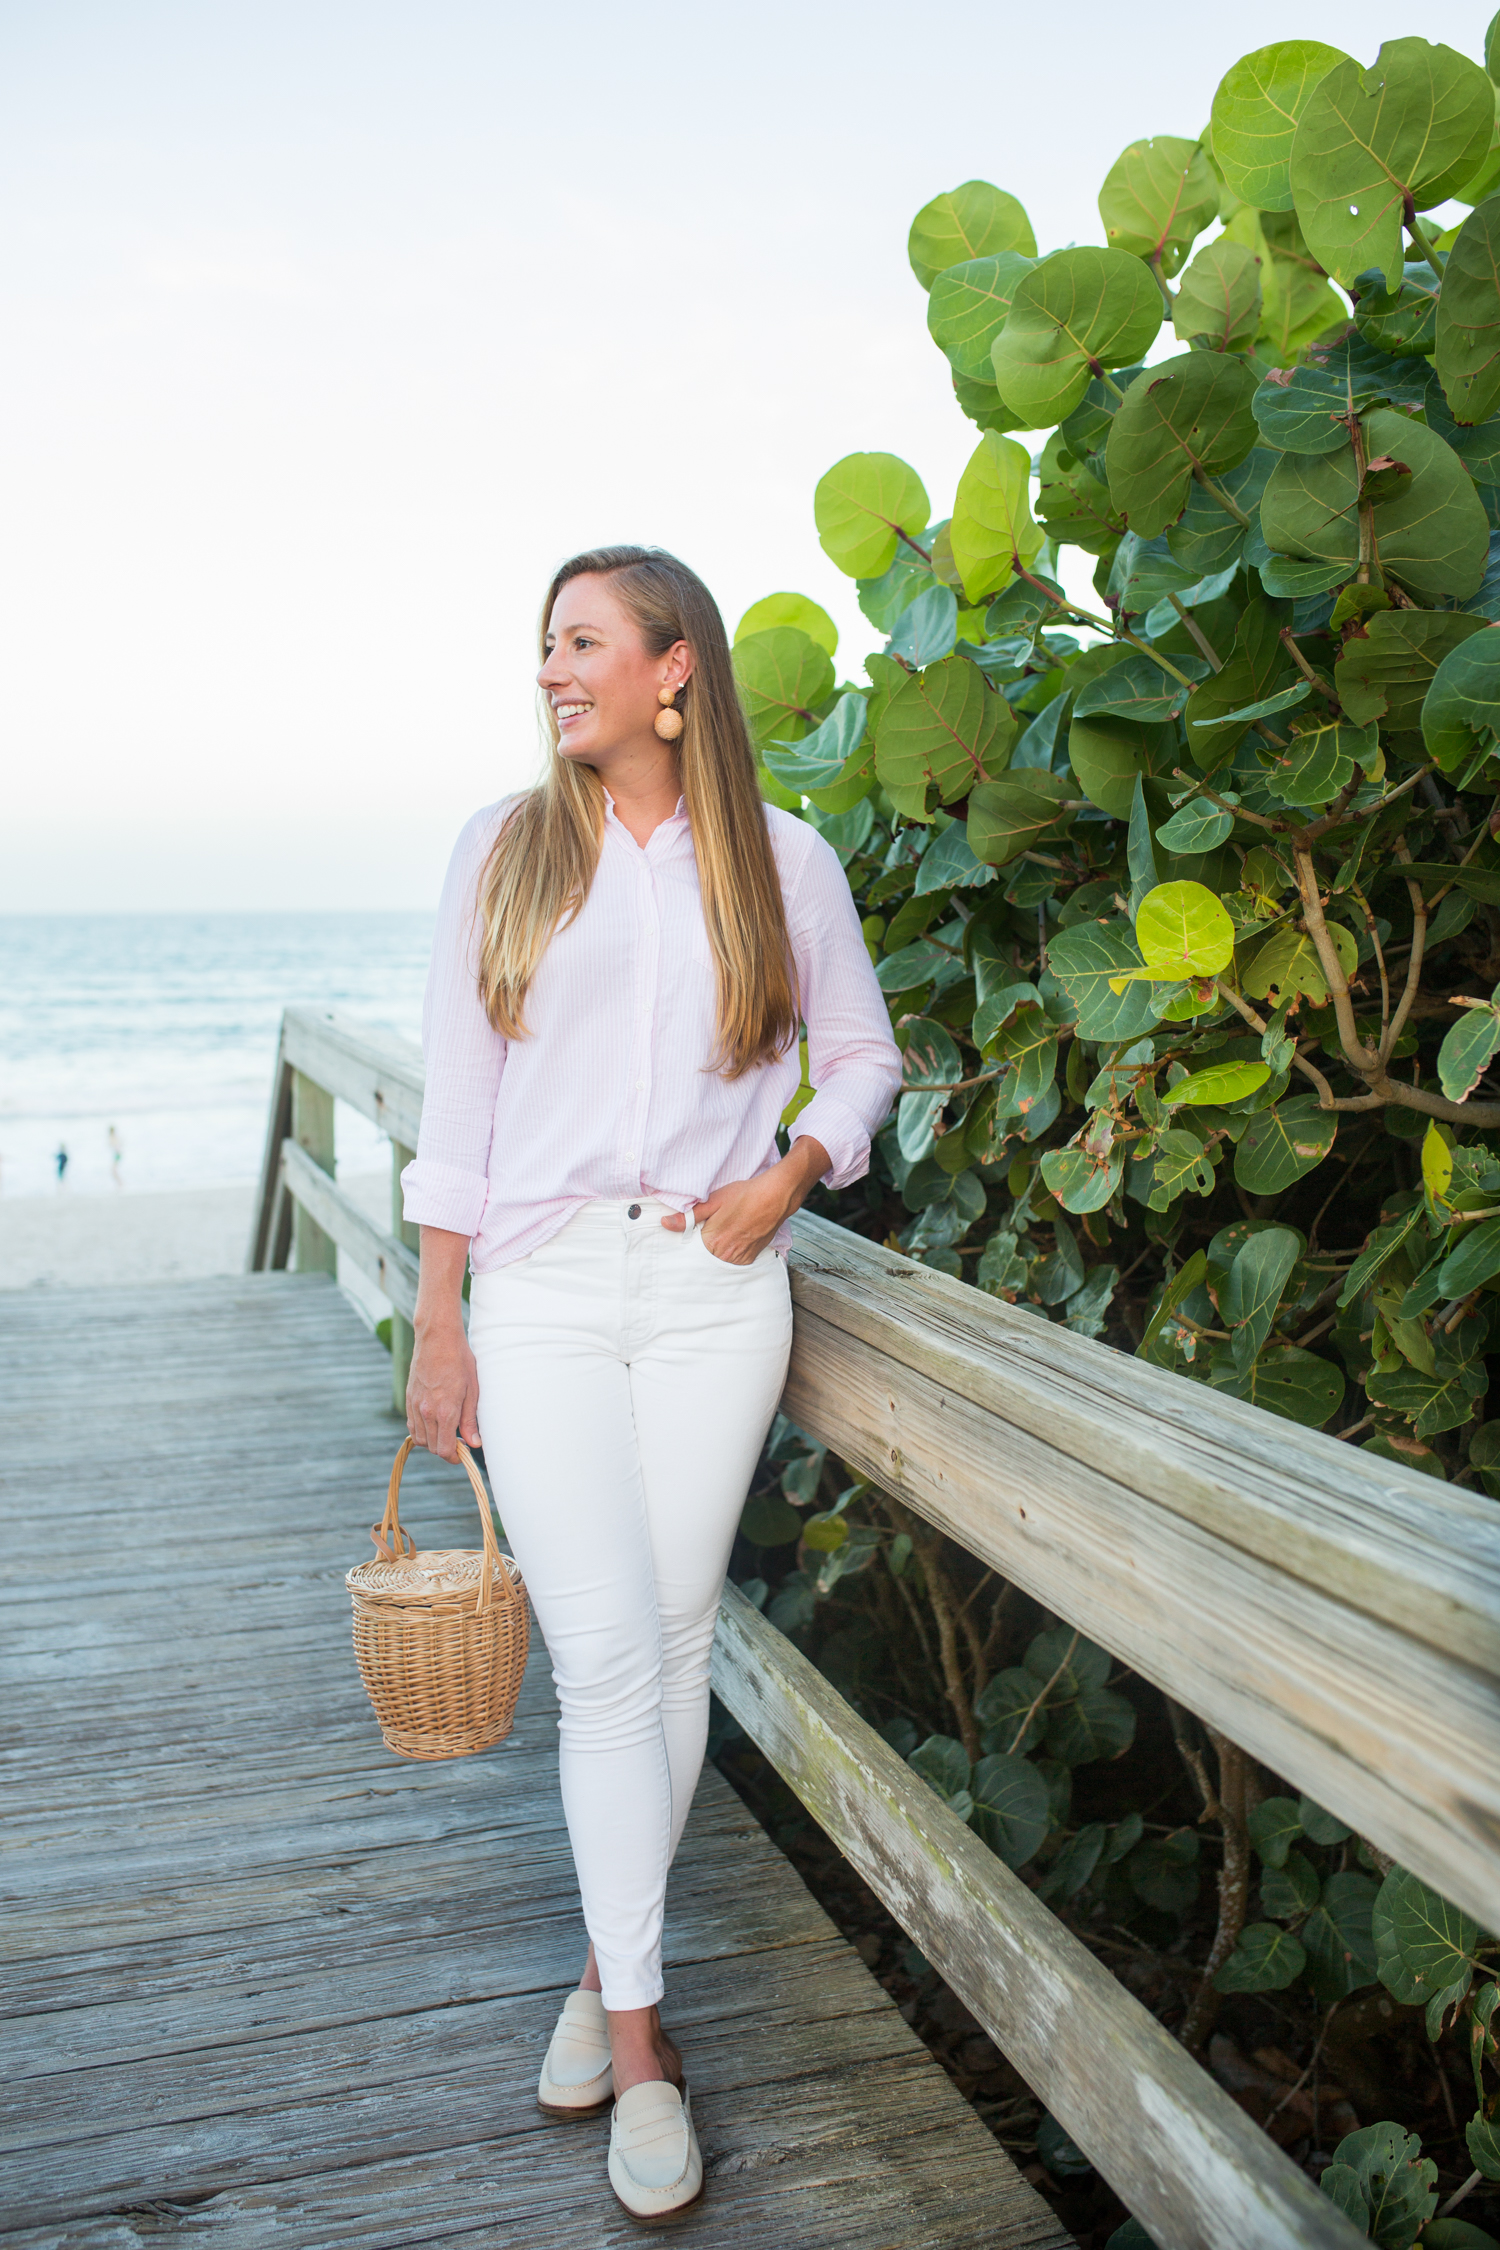 Striped Button Down Oxford Top / Fall Outfit Inspiration / White Skinny Jeans / Sperry Mules / Loafers / Early Fall Outfit / Fall Transition Outfit - Sunshine Style, A Preppy Fashion and Coastal Lifestyle blog by Katie